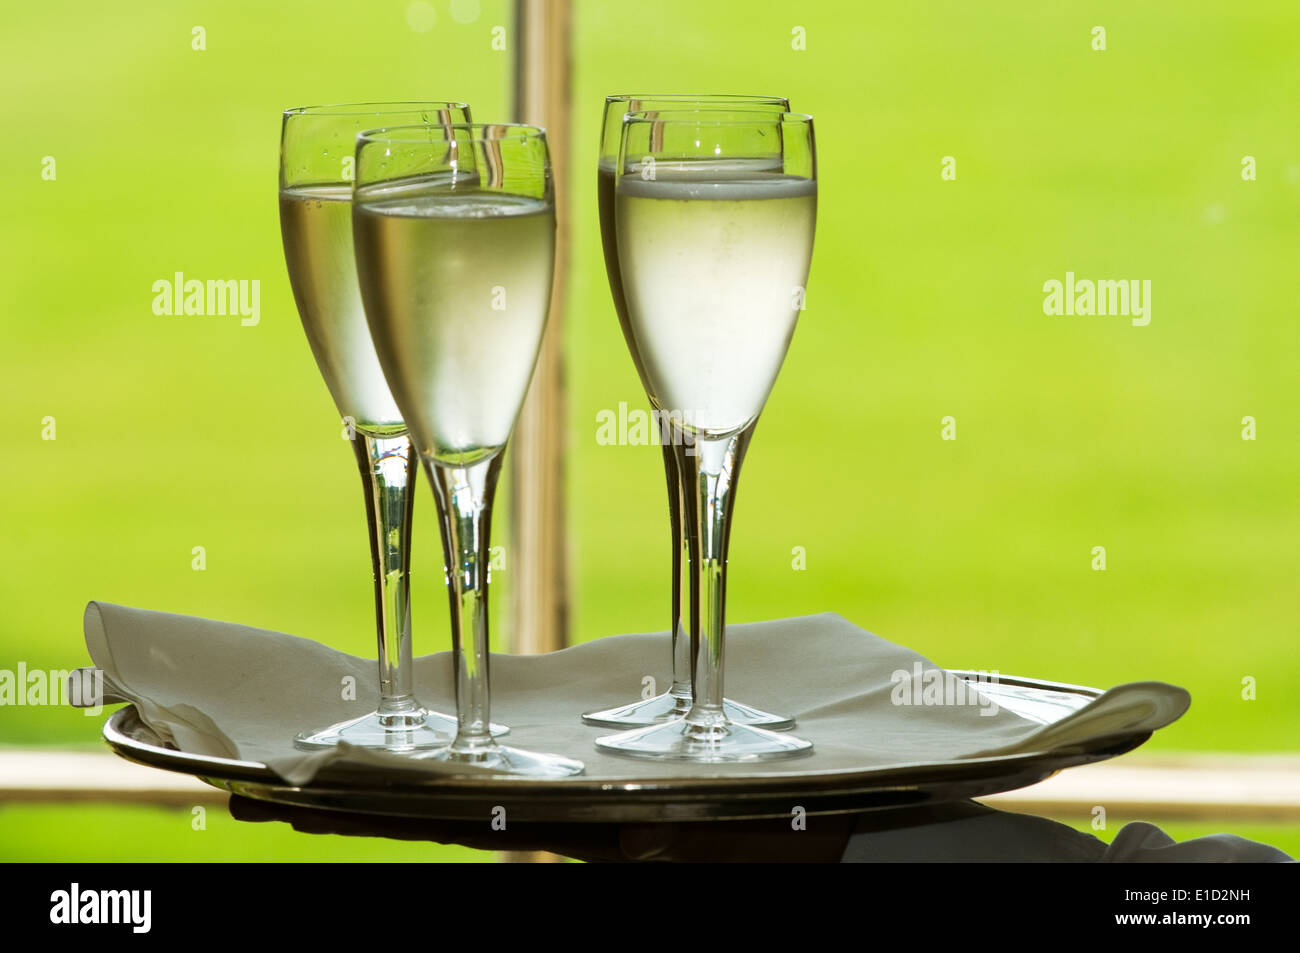 champagne flute flutes glass of glasses bubbly silver service celebration celebrations tray of drinks alcohol social drinker dri - Stock Image